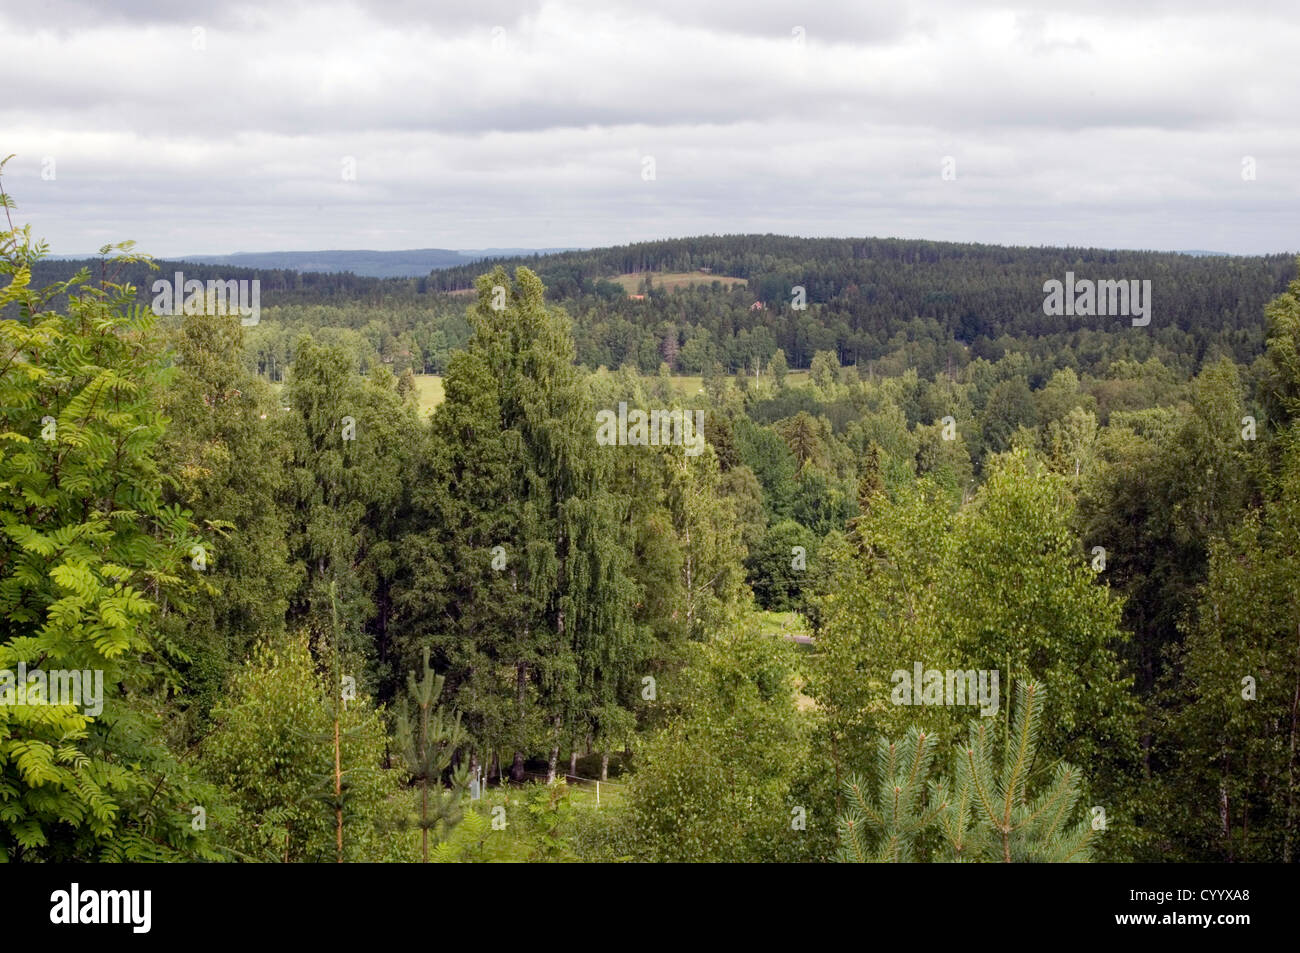 swedish forest forests sweden pine tree trees wood timber industry forestry pines Scandinavia Scandinavian - Stock Image